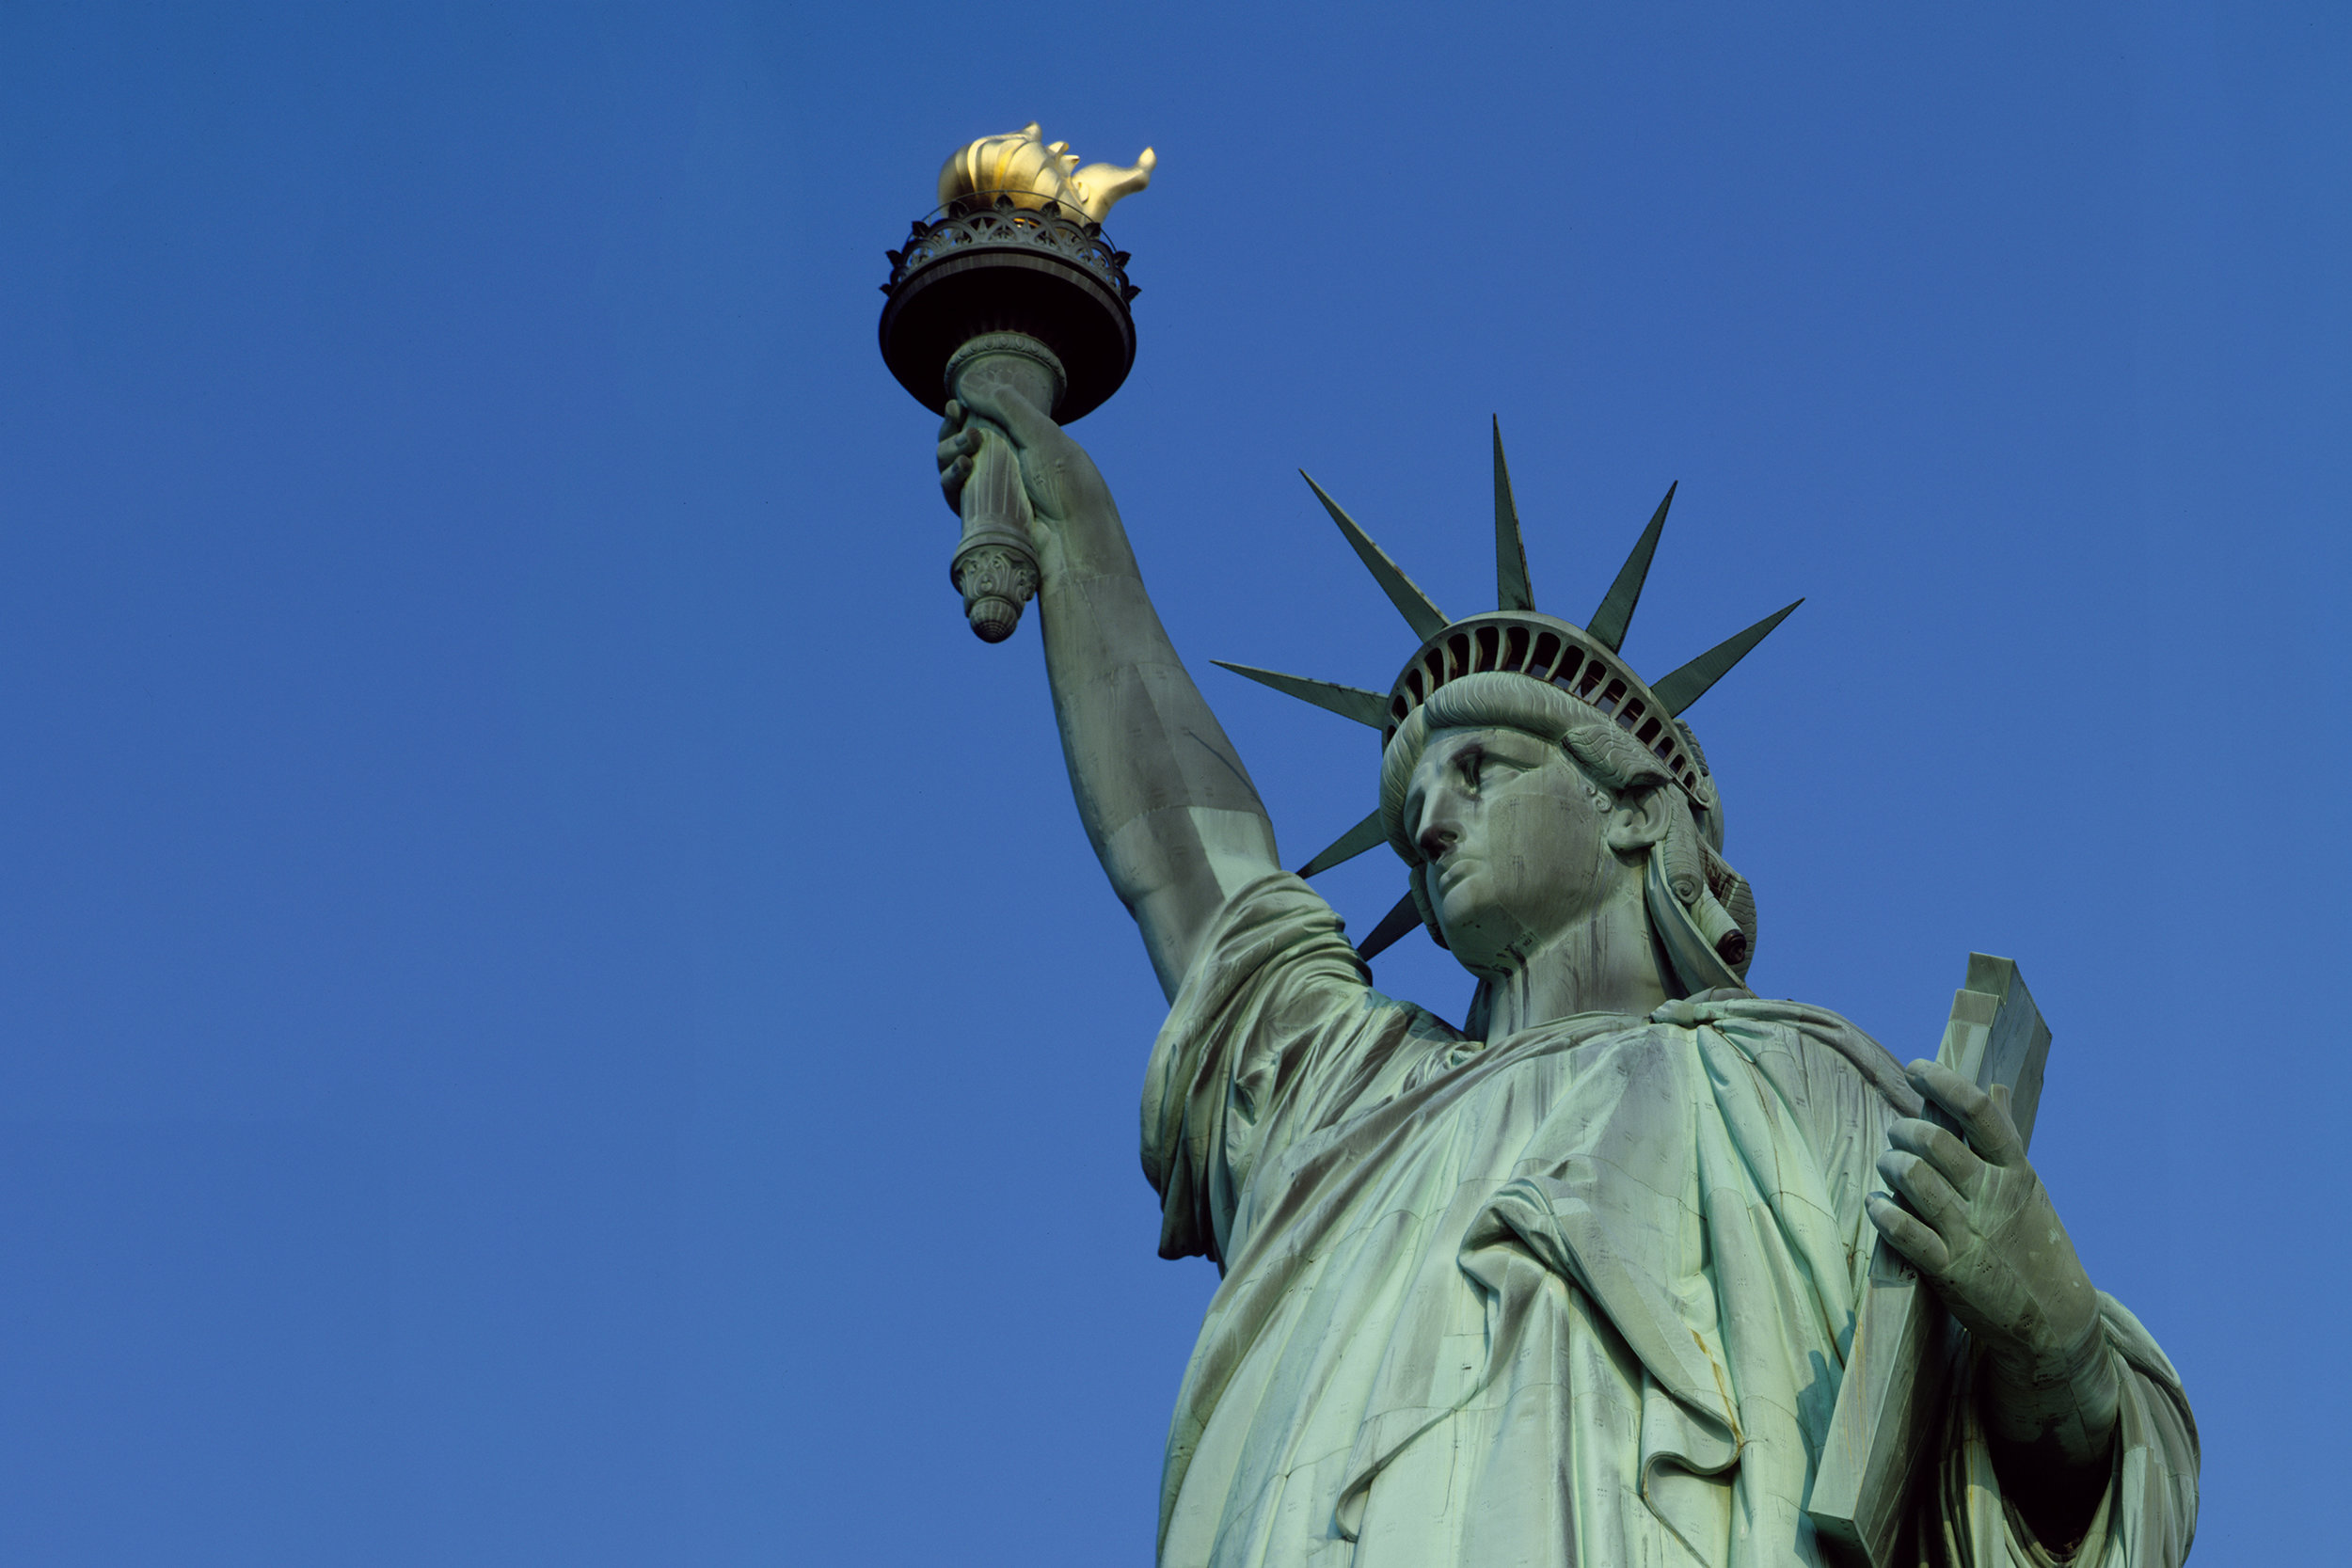 upshot of the Statue of Liberty, signifying freedom and equality for all.